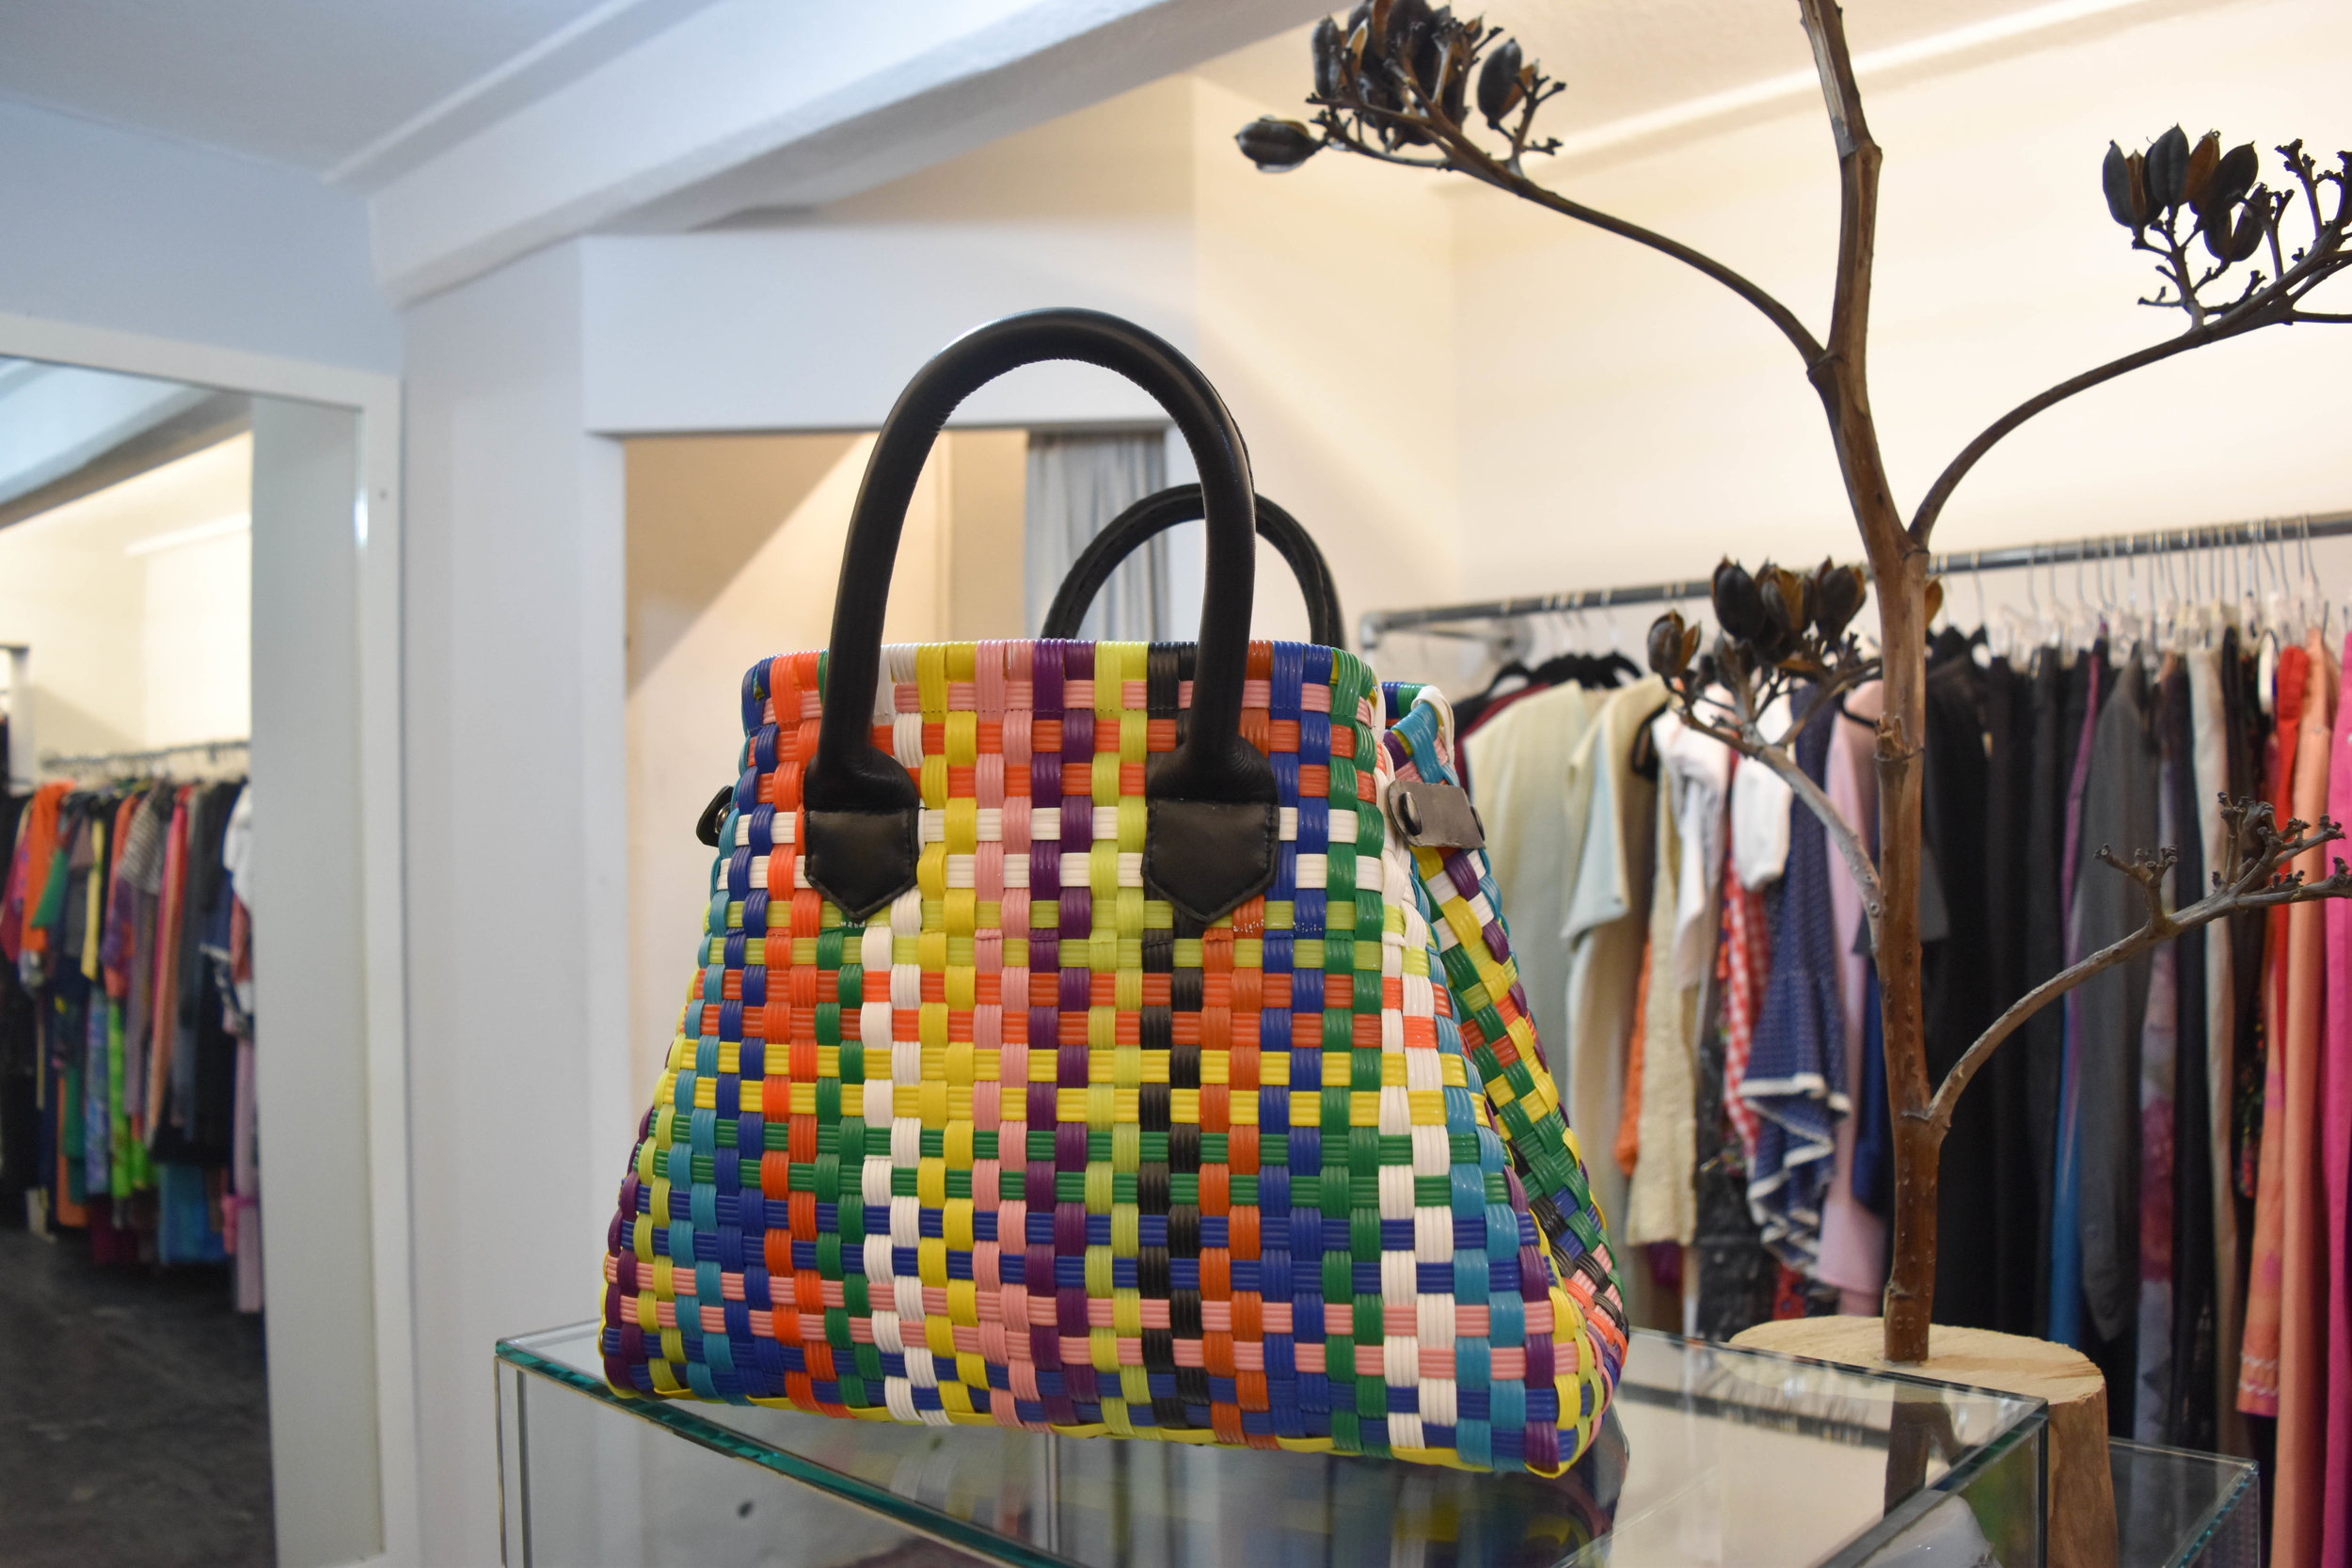 Colorful woven bags fill the store. Pretty perfect gift for friends back home.